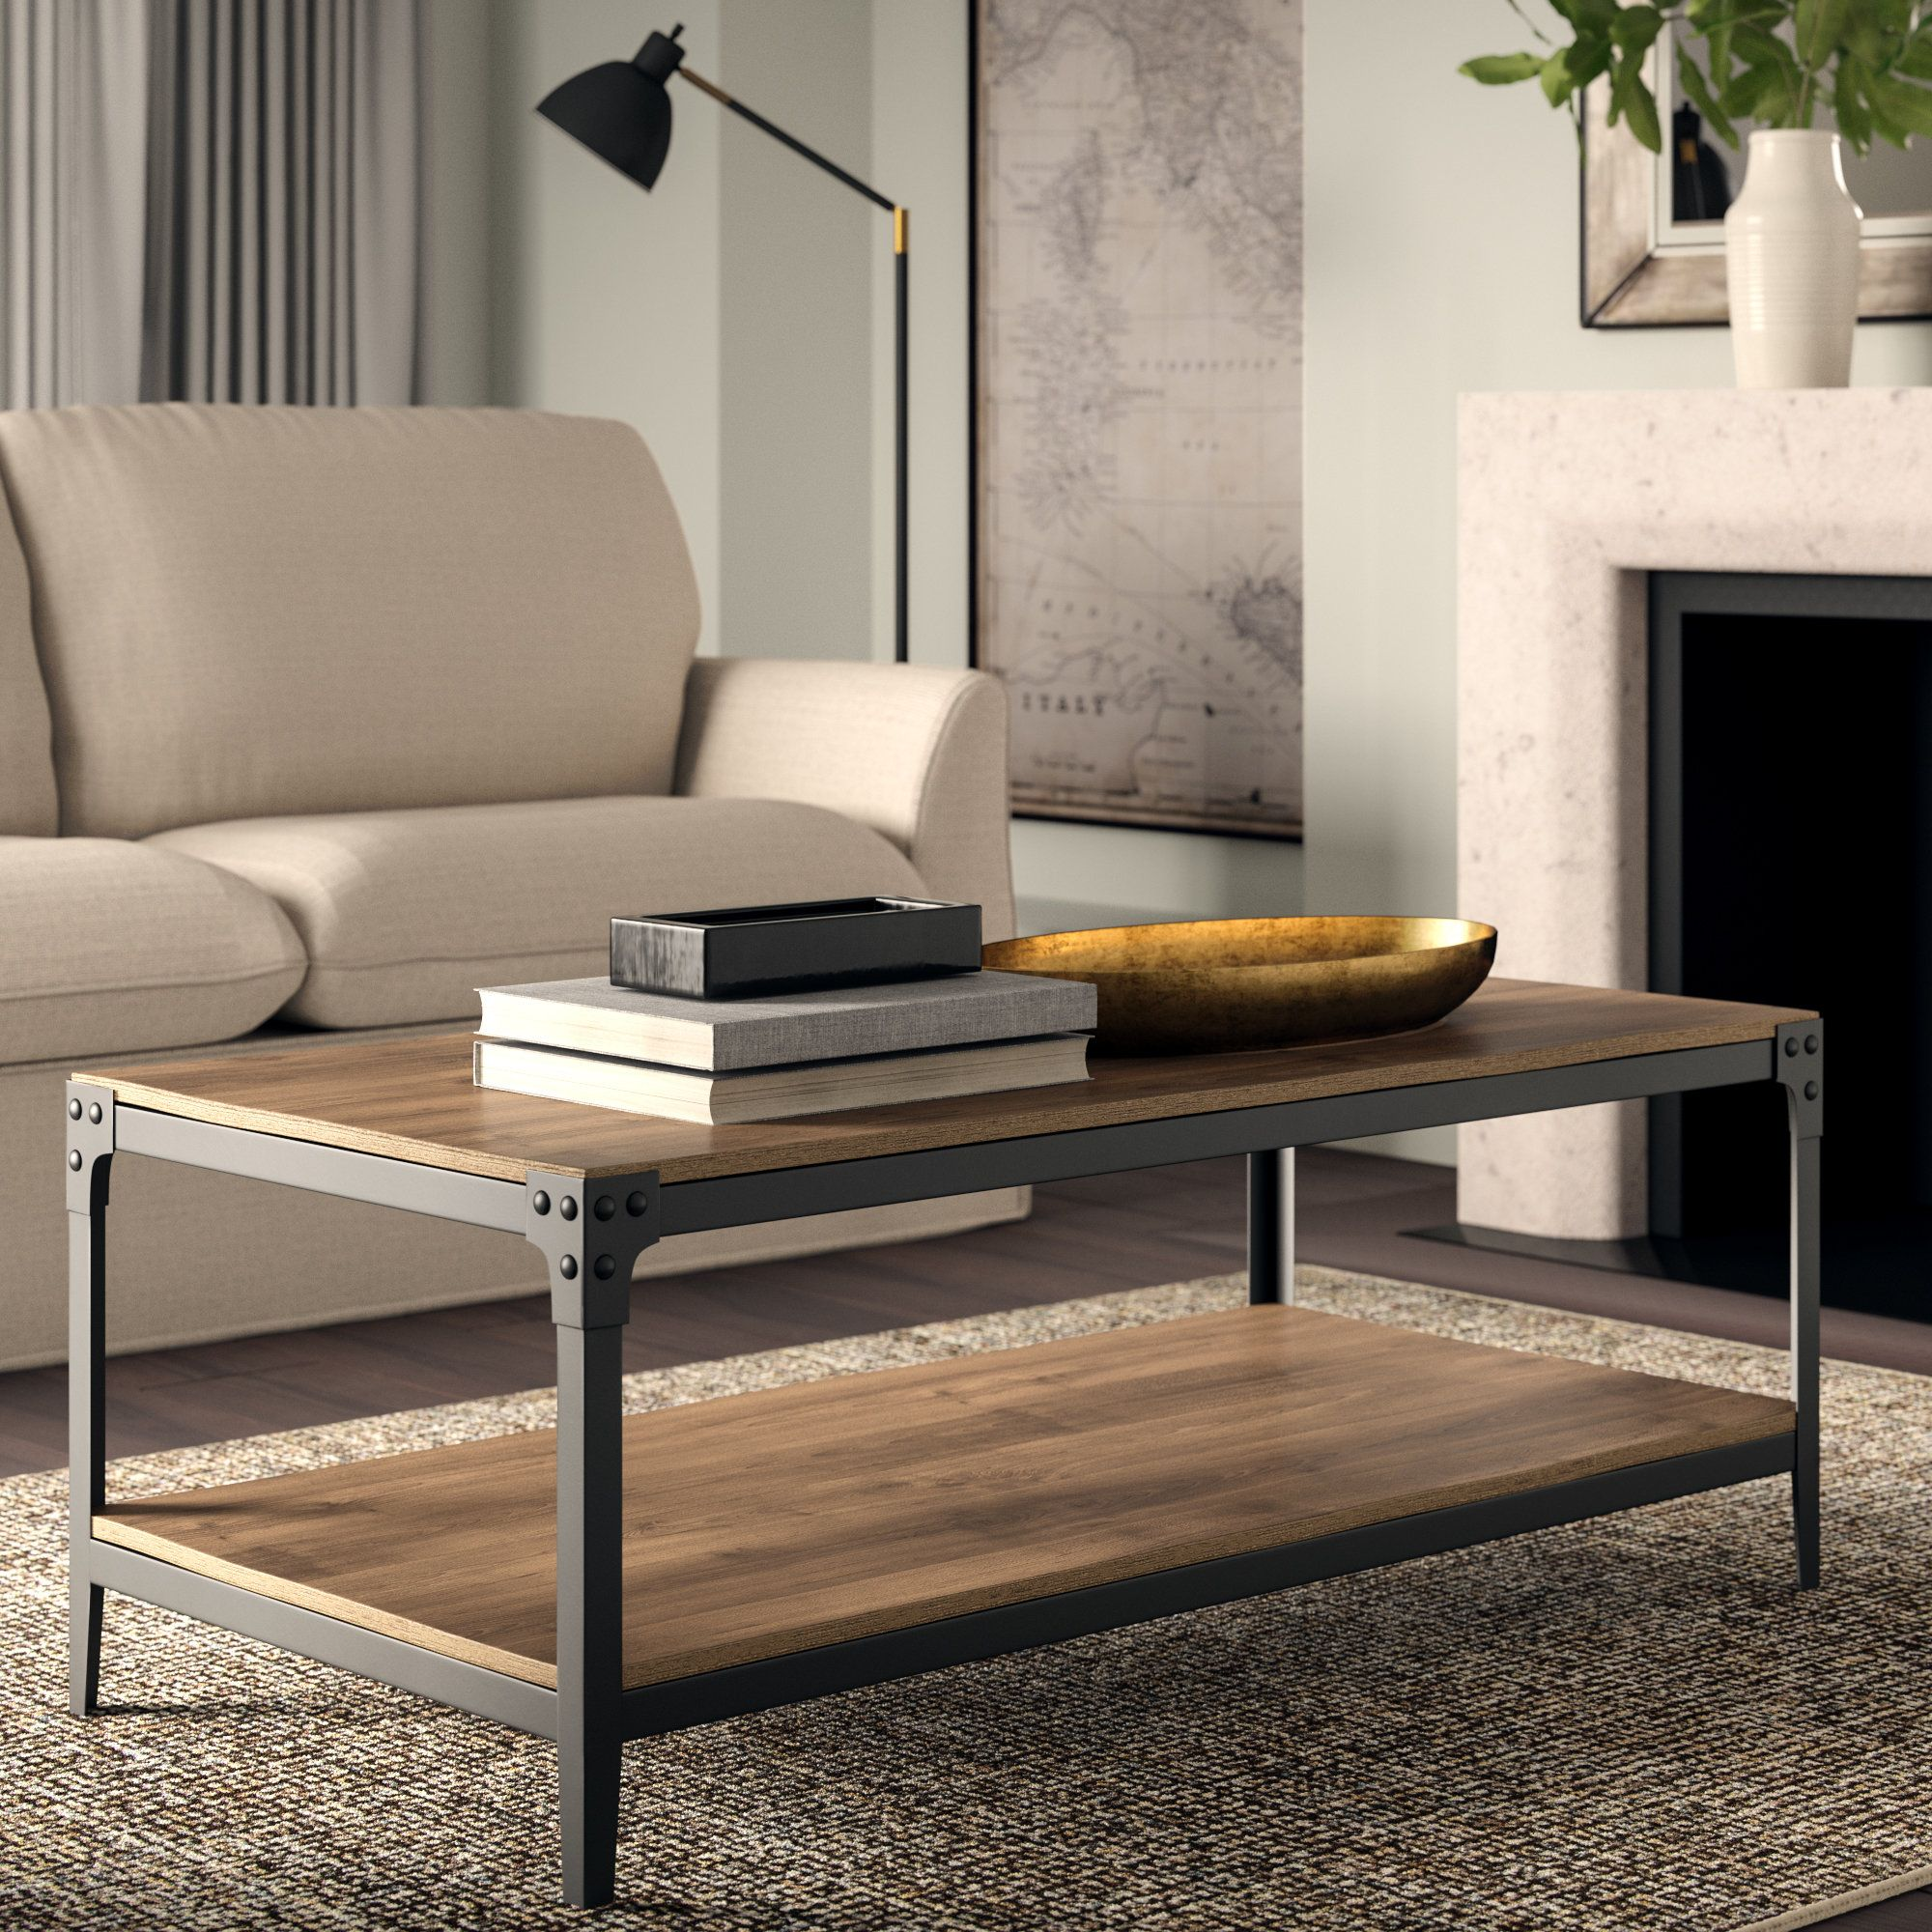 Greyleigh Cainsville Coffee Table Reviews Wayfair Living Room Table Sets Coffee Table Coffee Table Rectangle